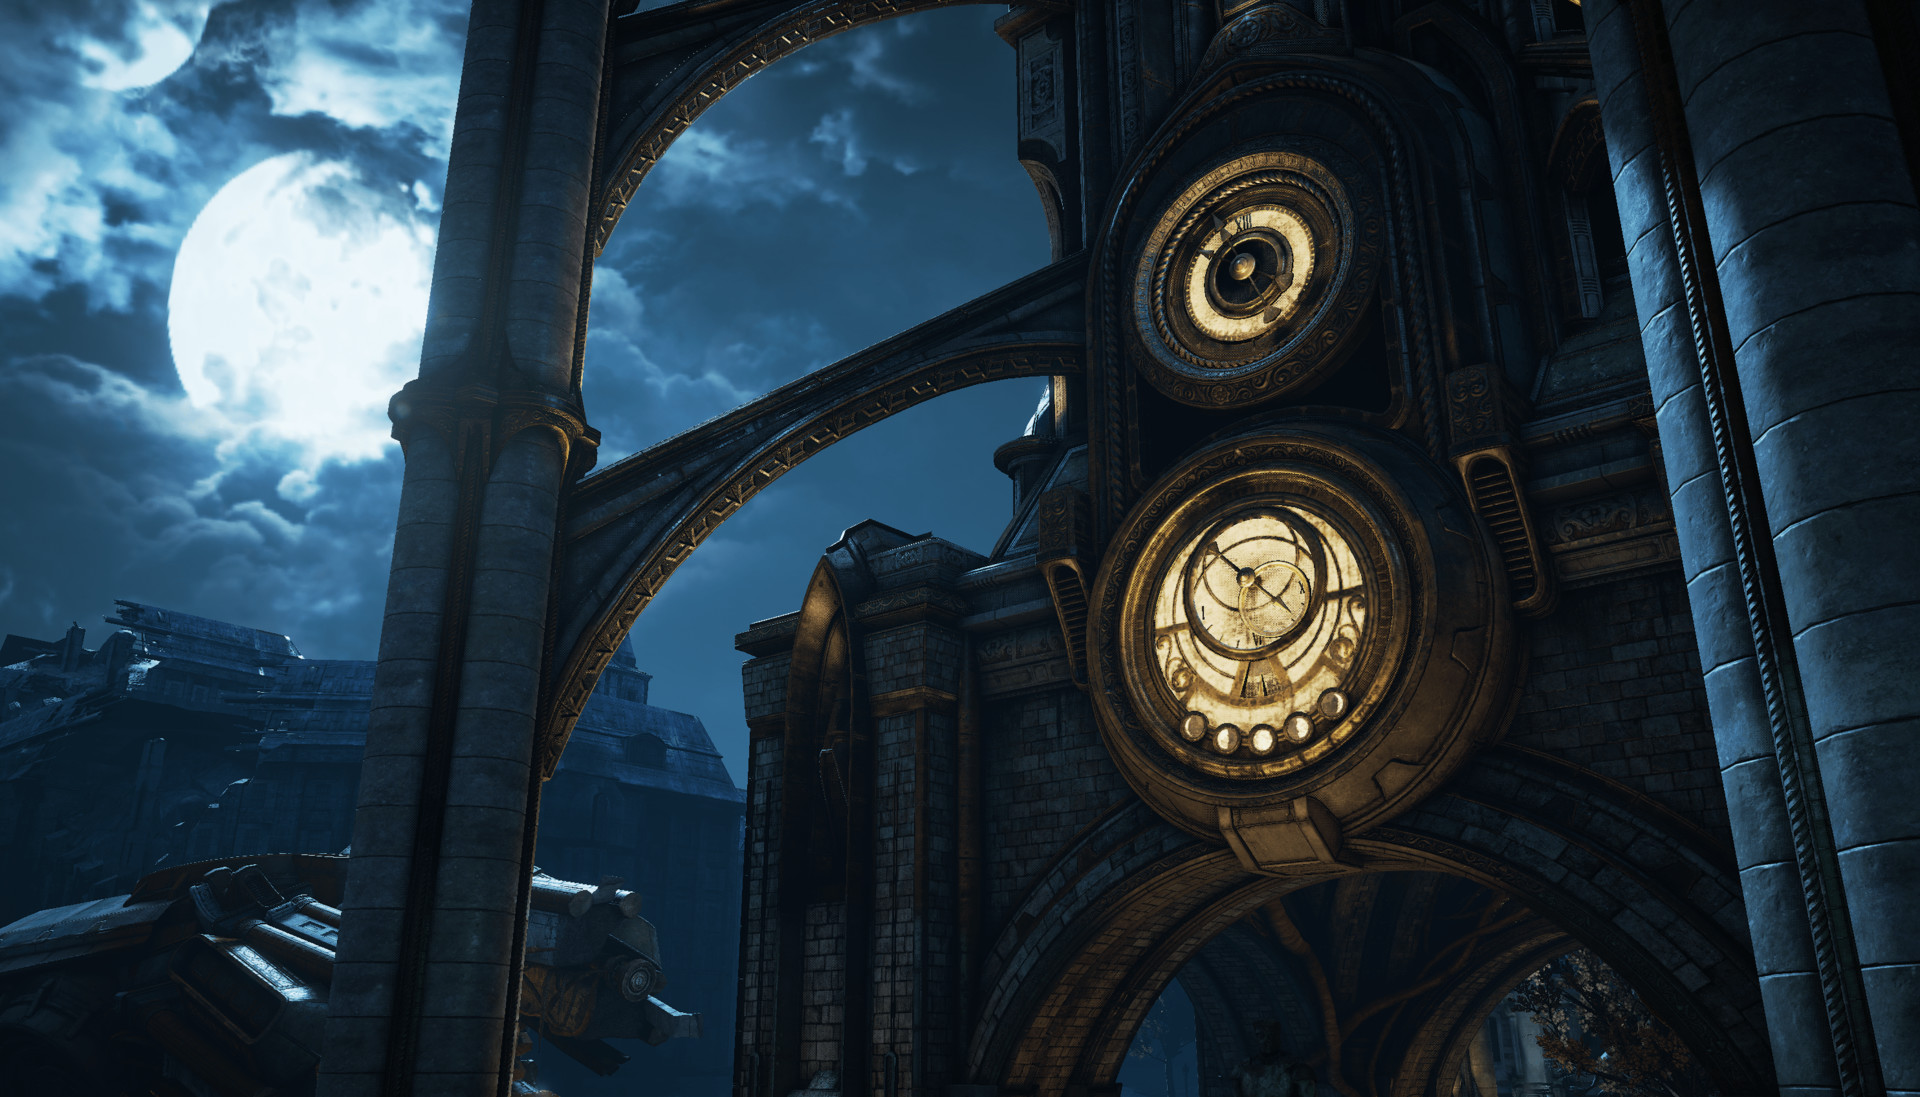 *Responsible for creation clocktower look development, texture creation, and partial modeling.